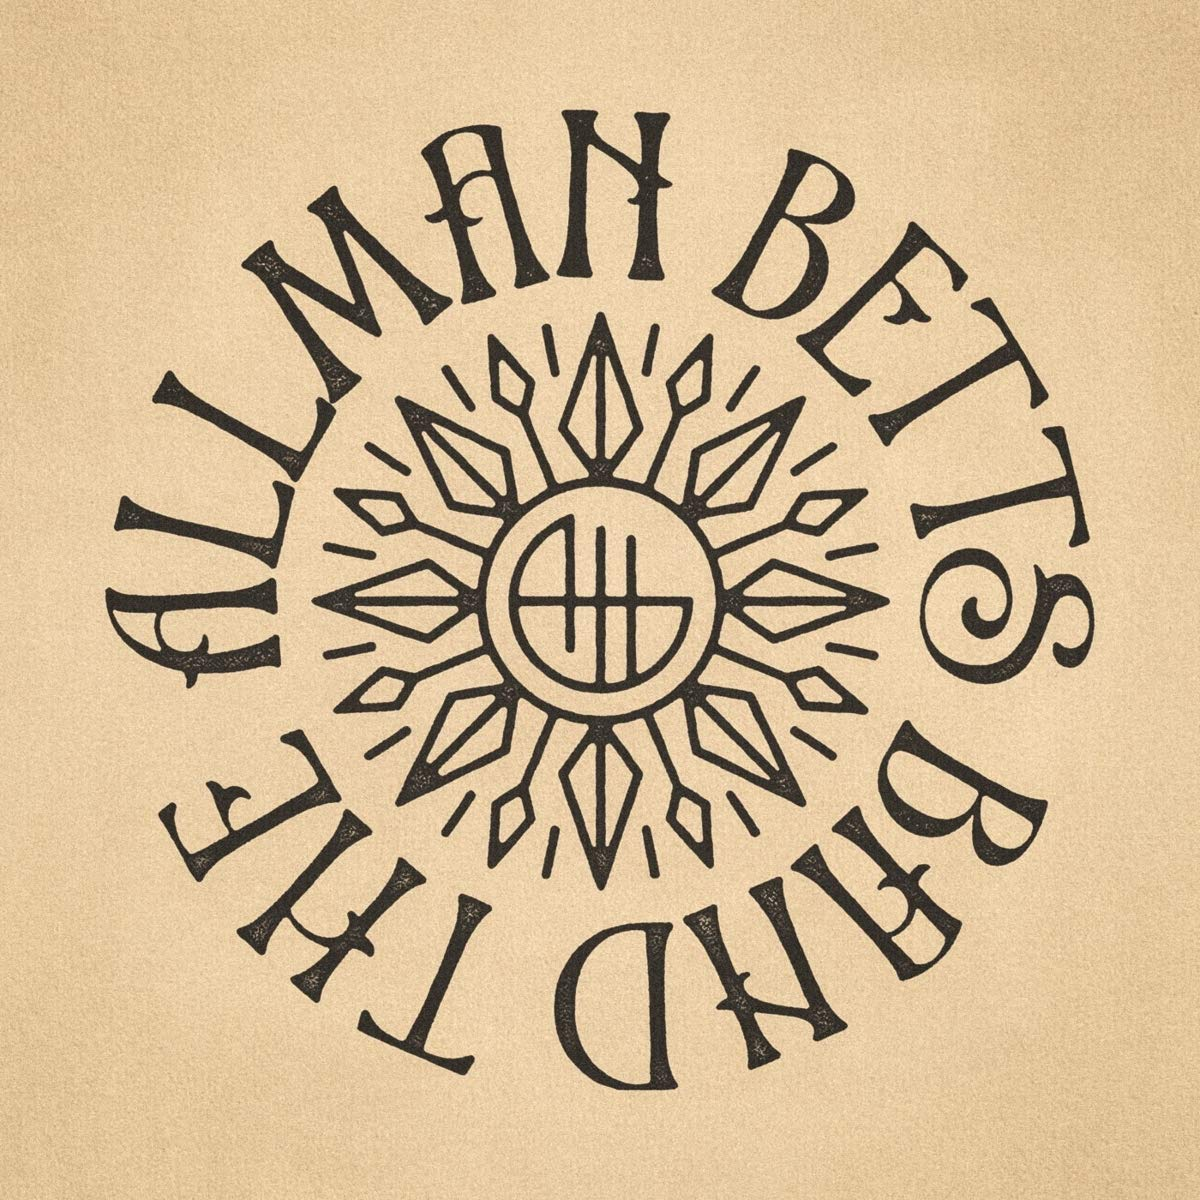 Buy Allman Betts Band: Down to the River New or Used via Amazon